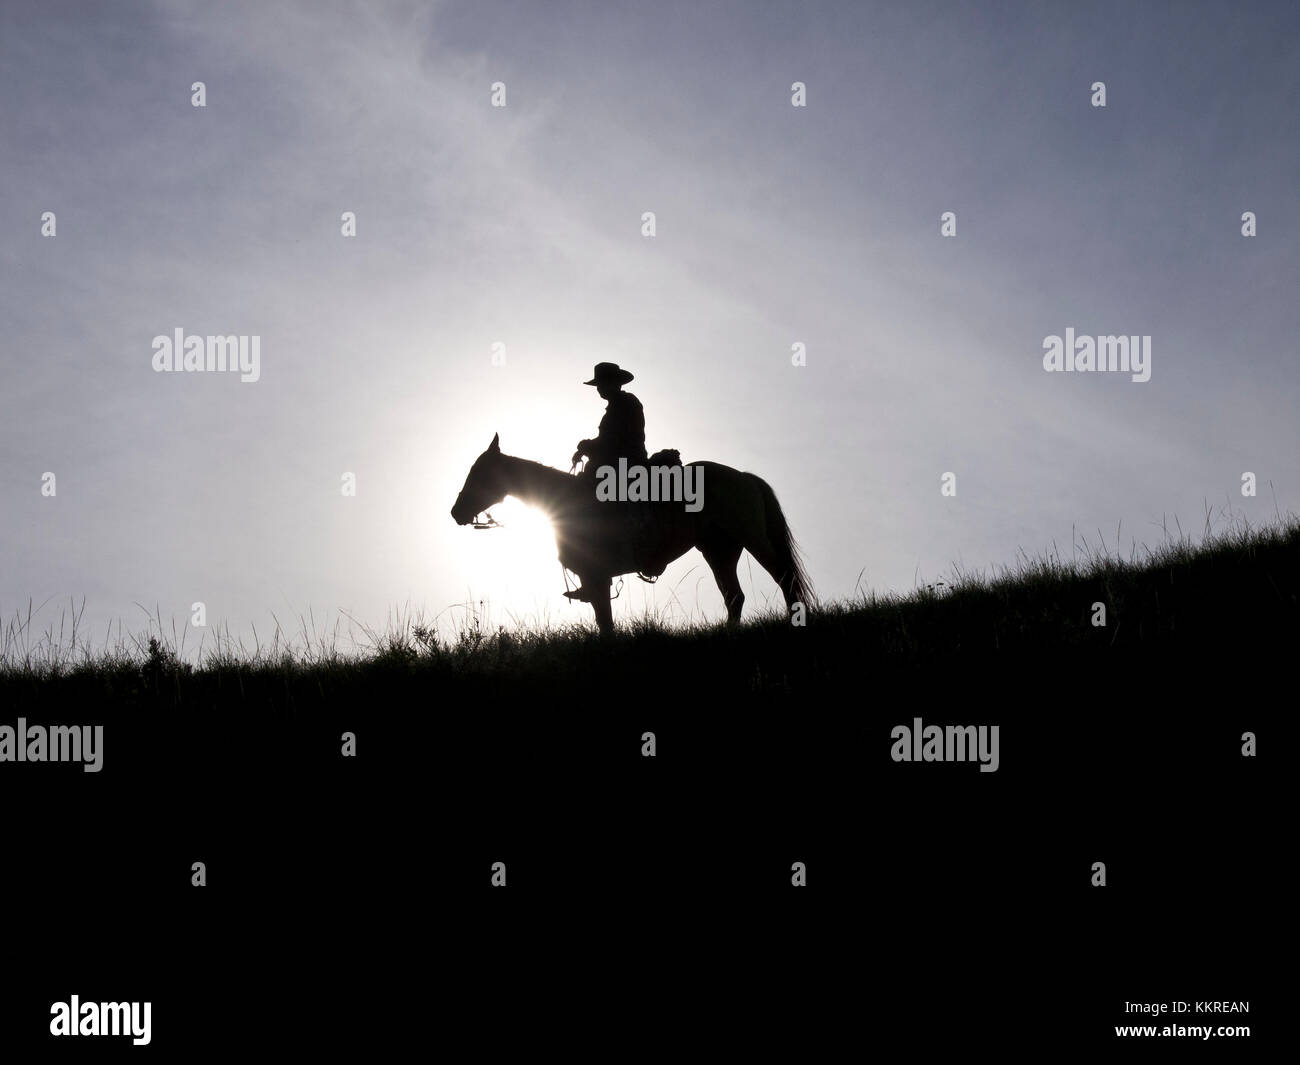 Cowboy And Horse Silhouette Stock Photo Alamy